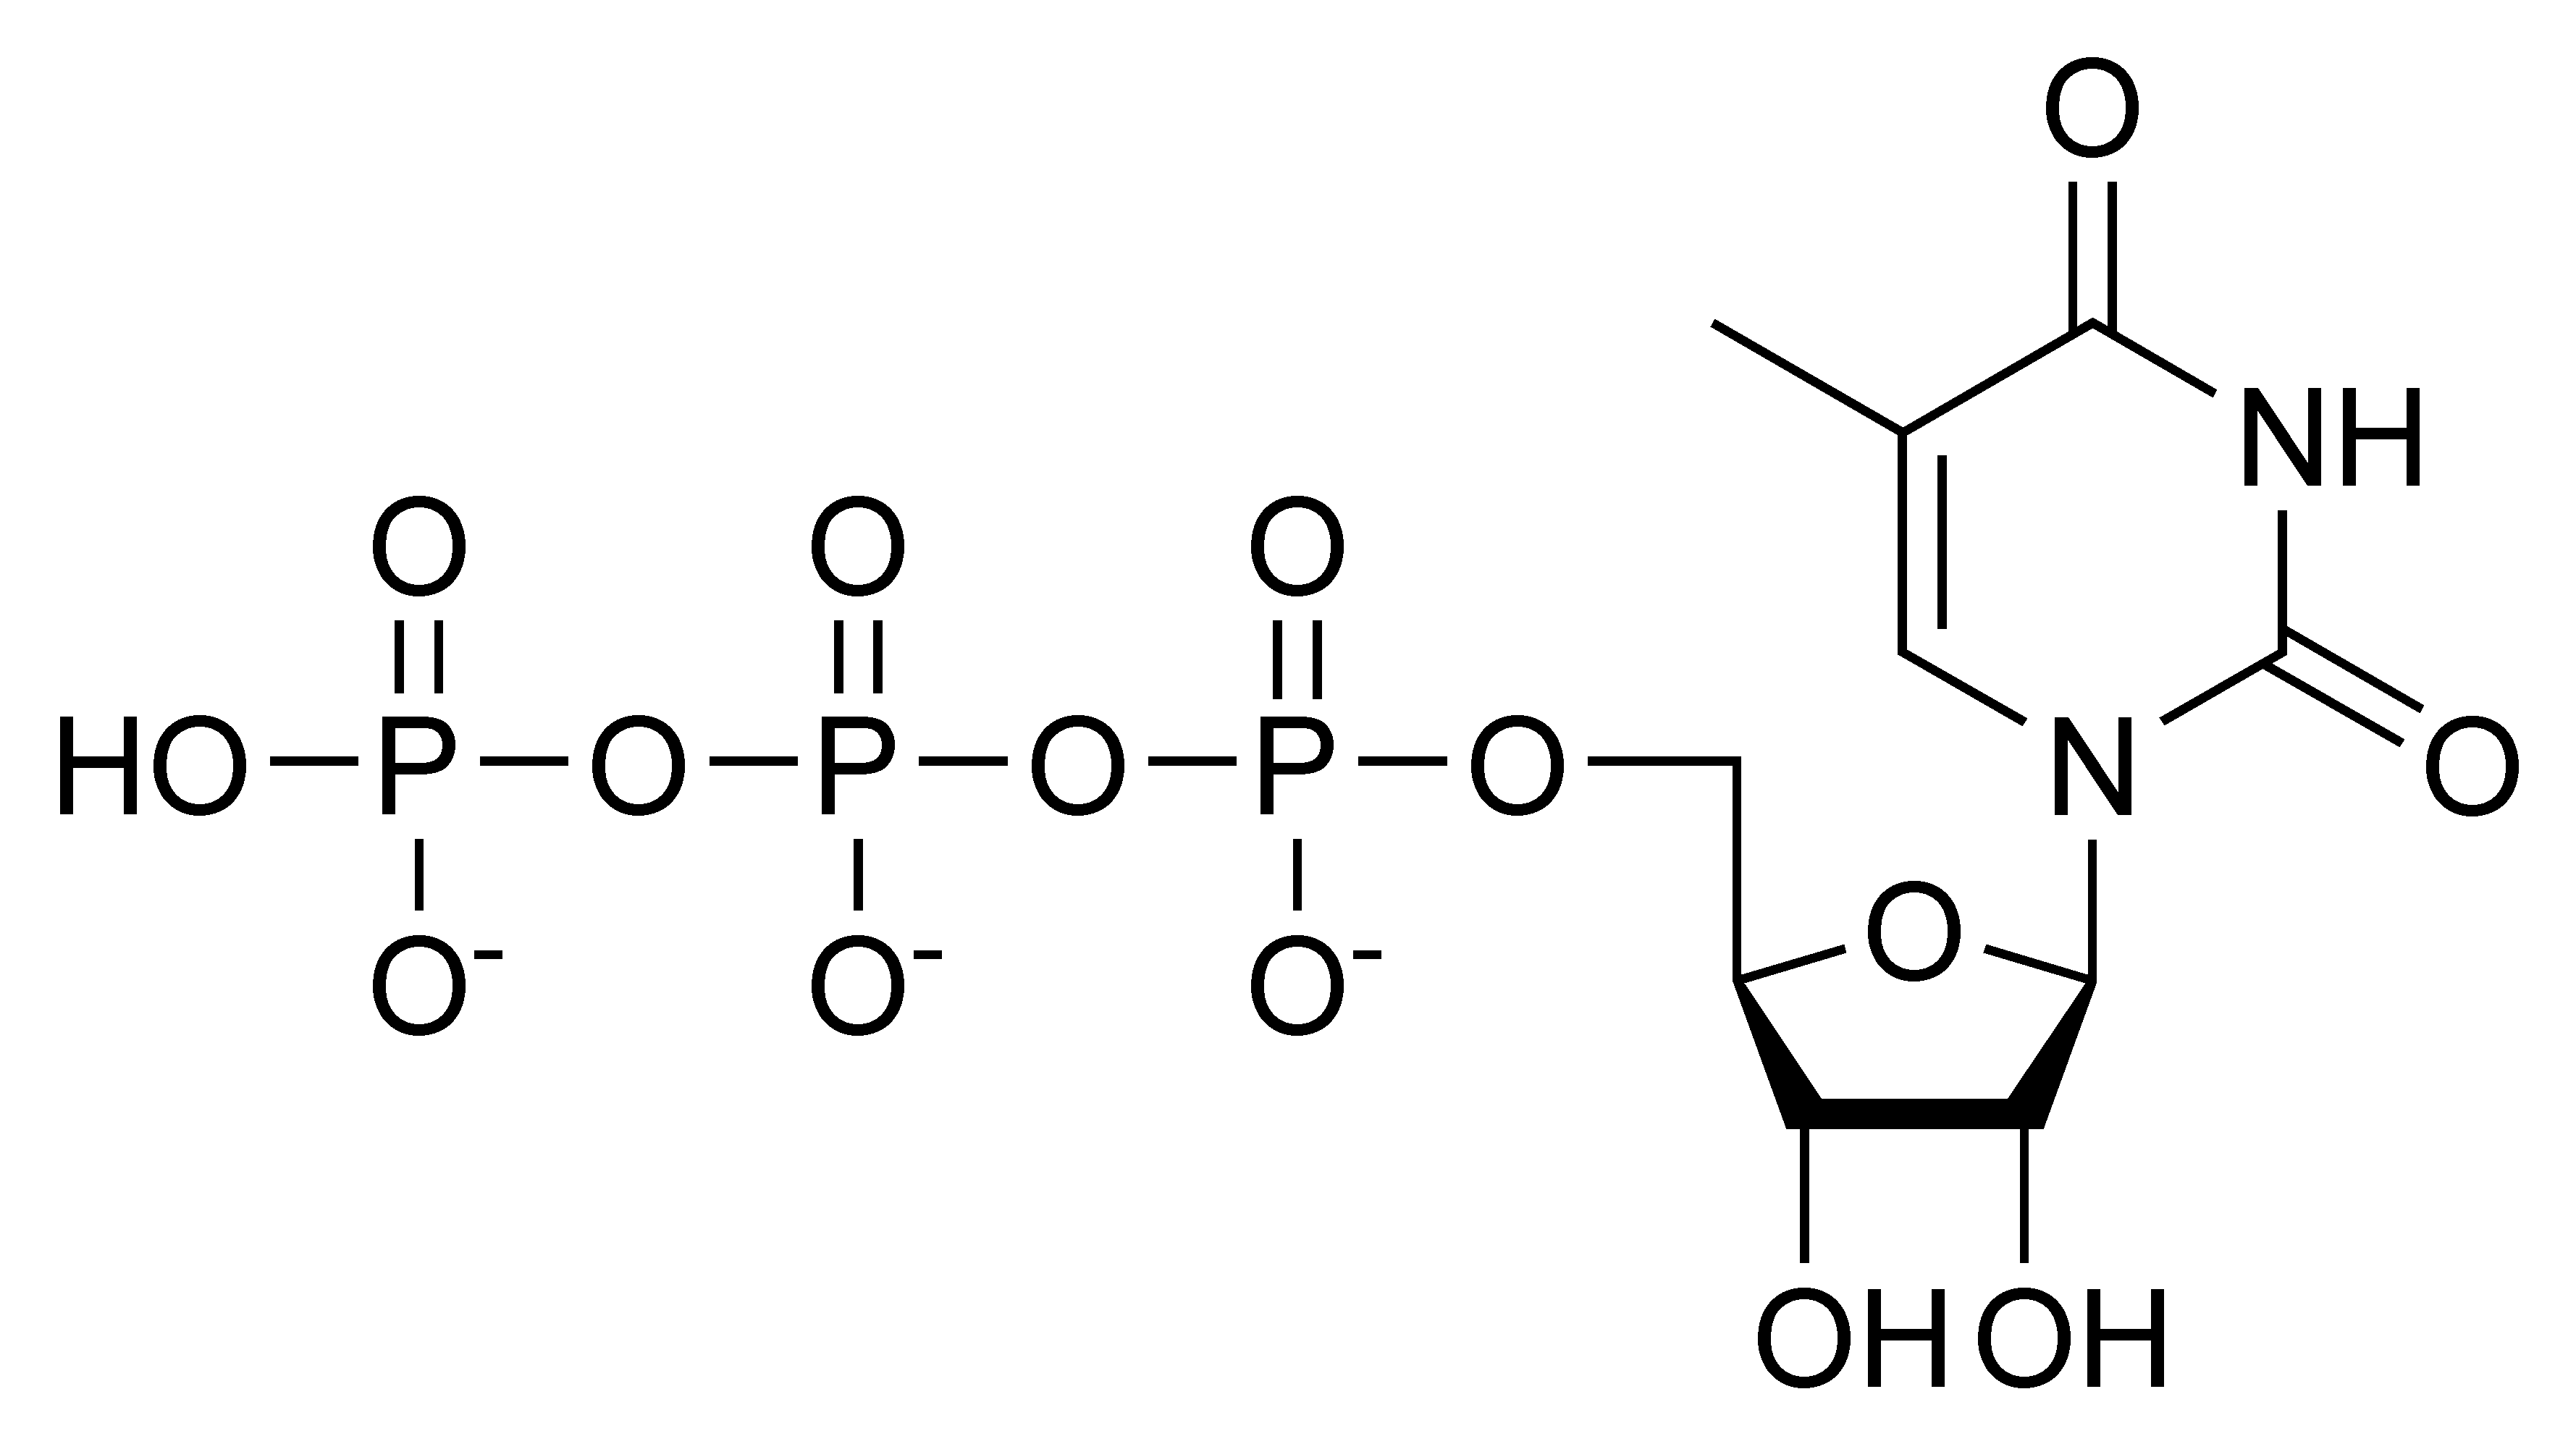 Chemical structure of thymidine triphosphate